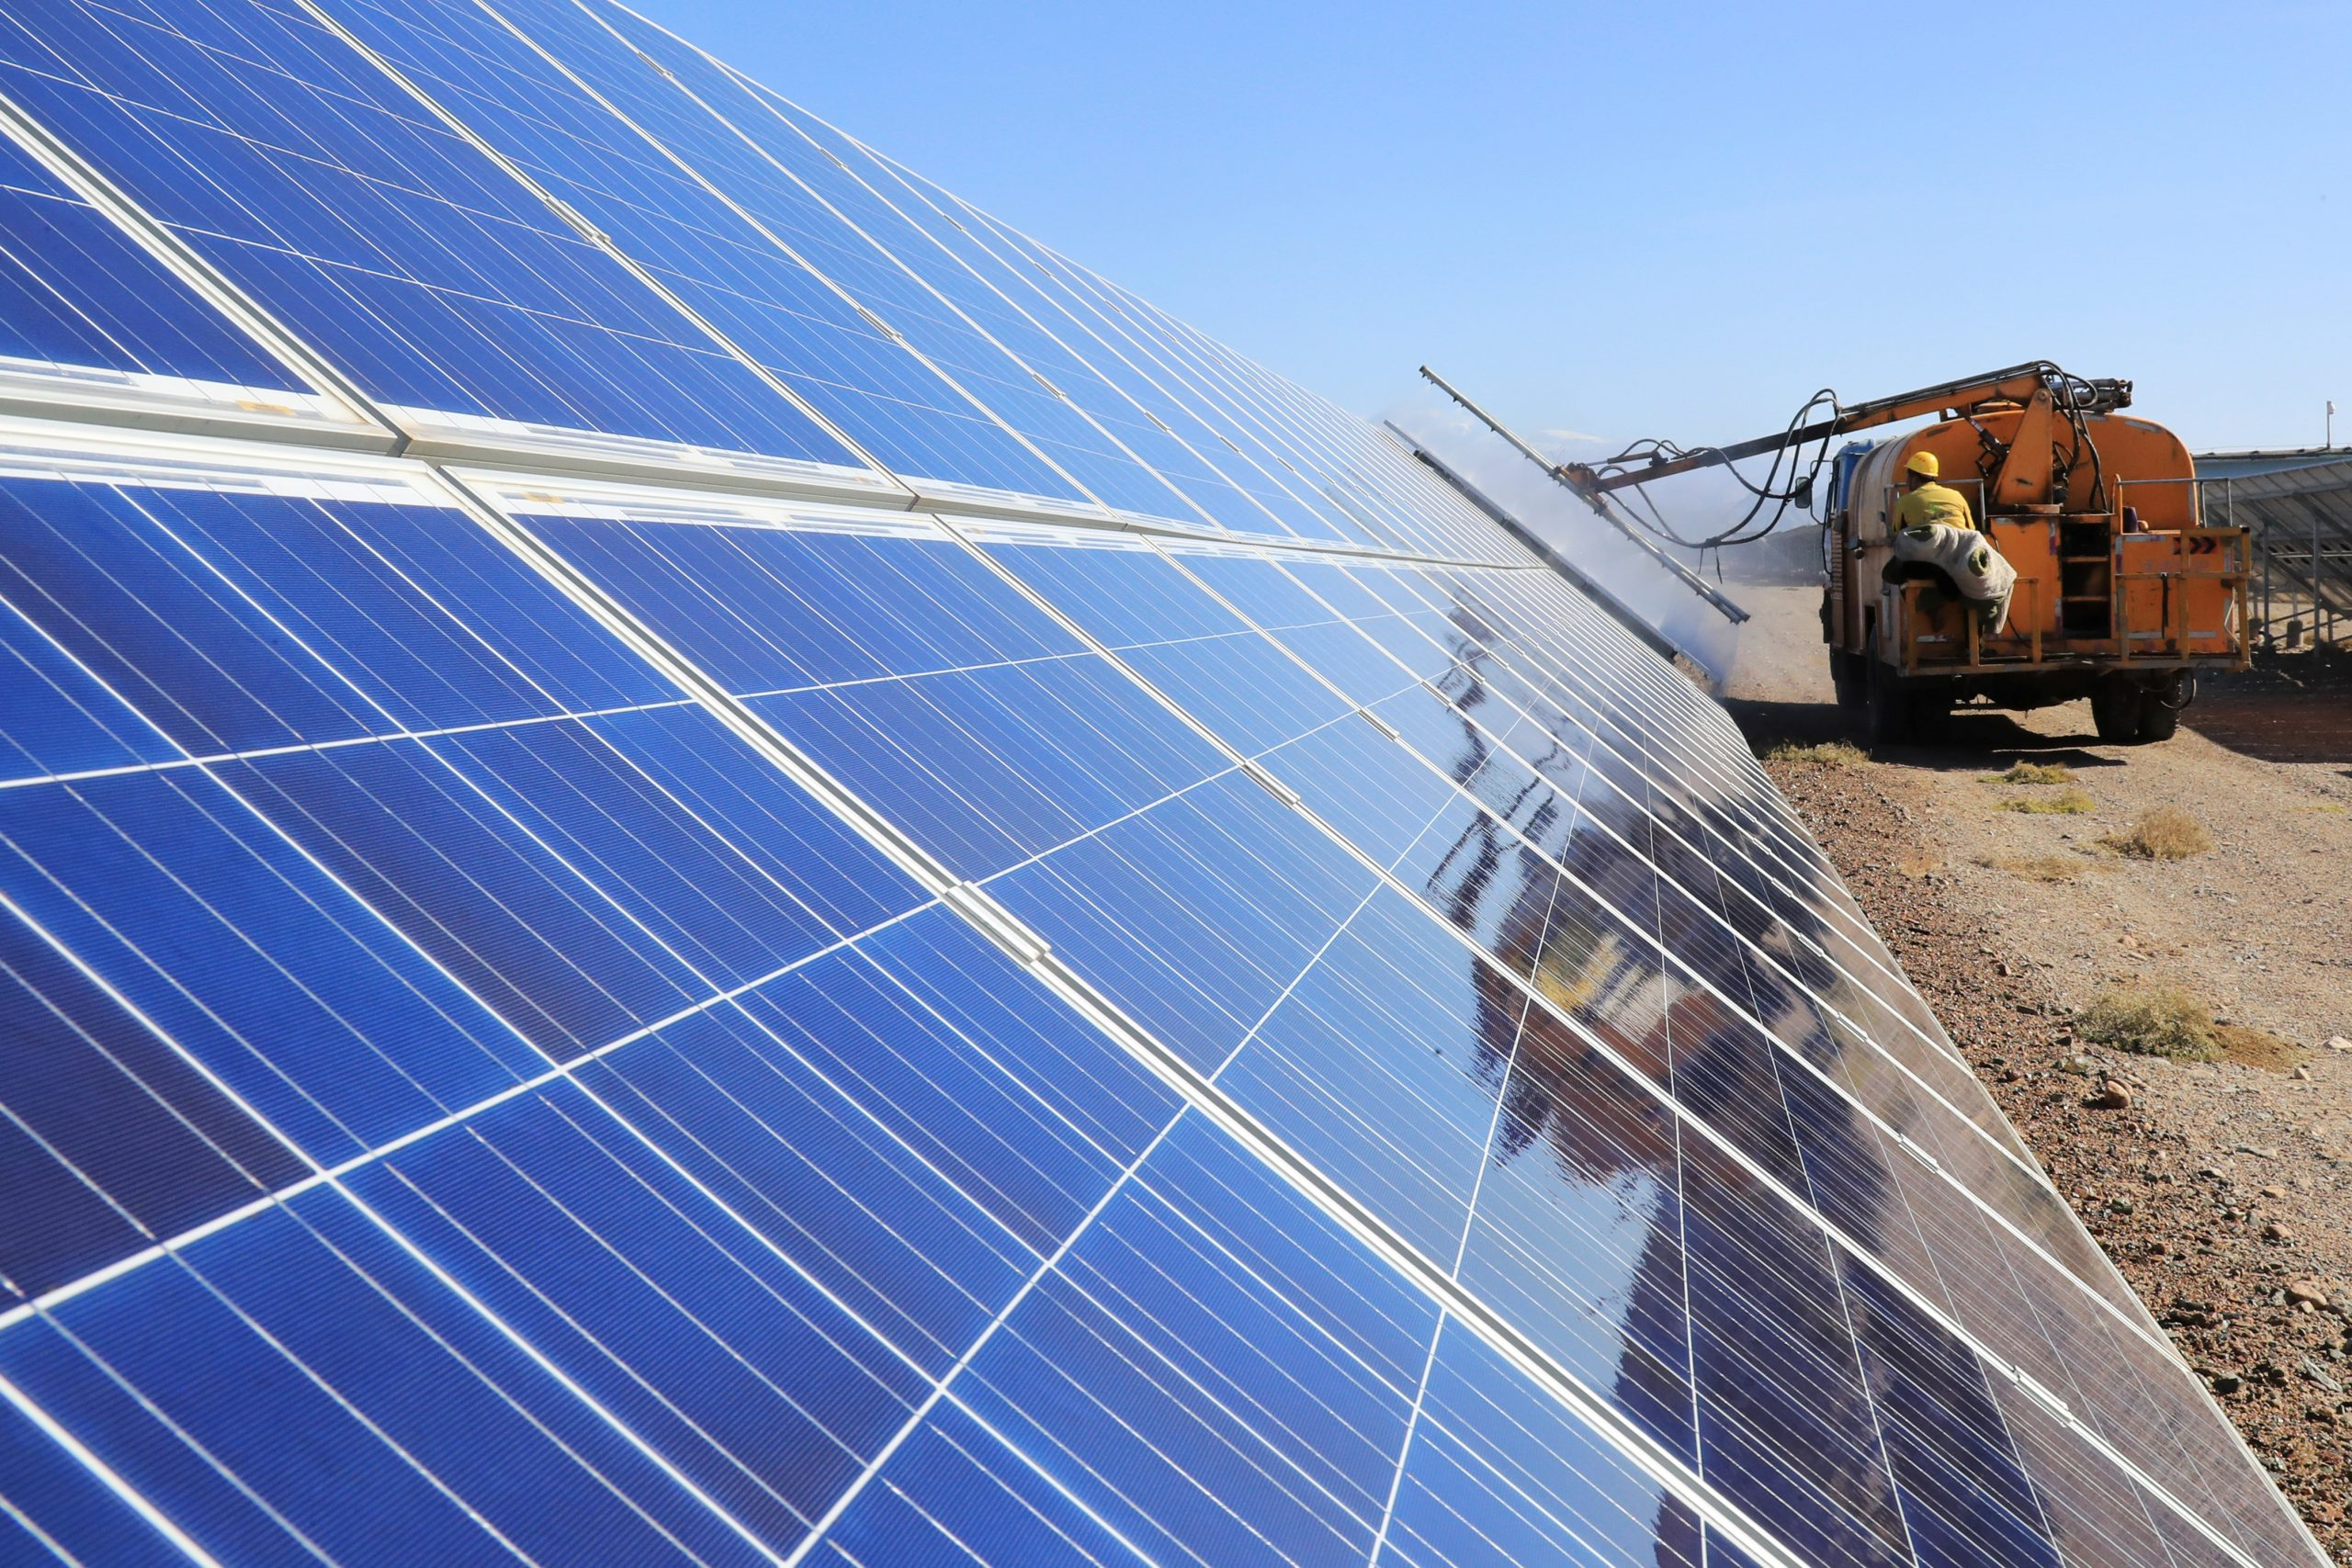 new-allegations-of-forced-labor-at-chinese-solar-manufacturers-voice-of-america